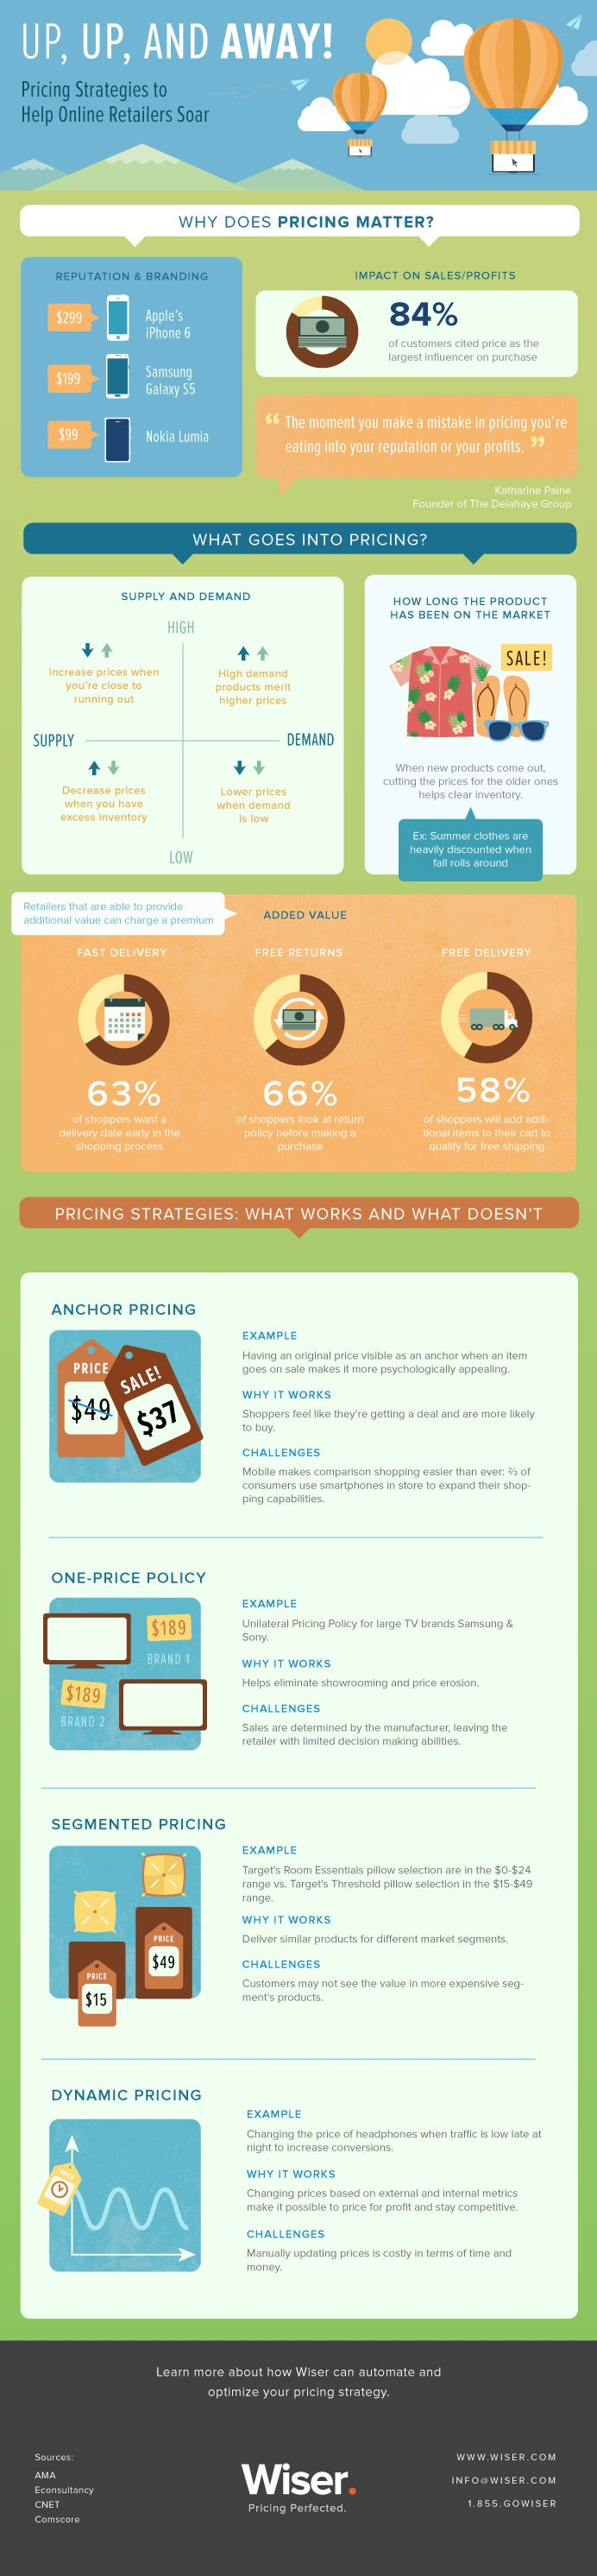 Up,Up, and Away: Pricing Strategies to Help Online Retailers Soar